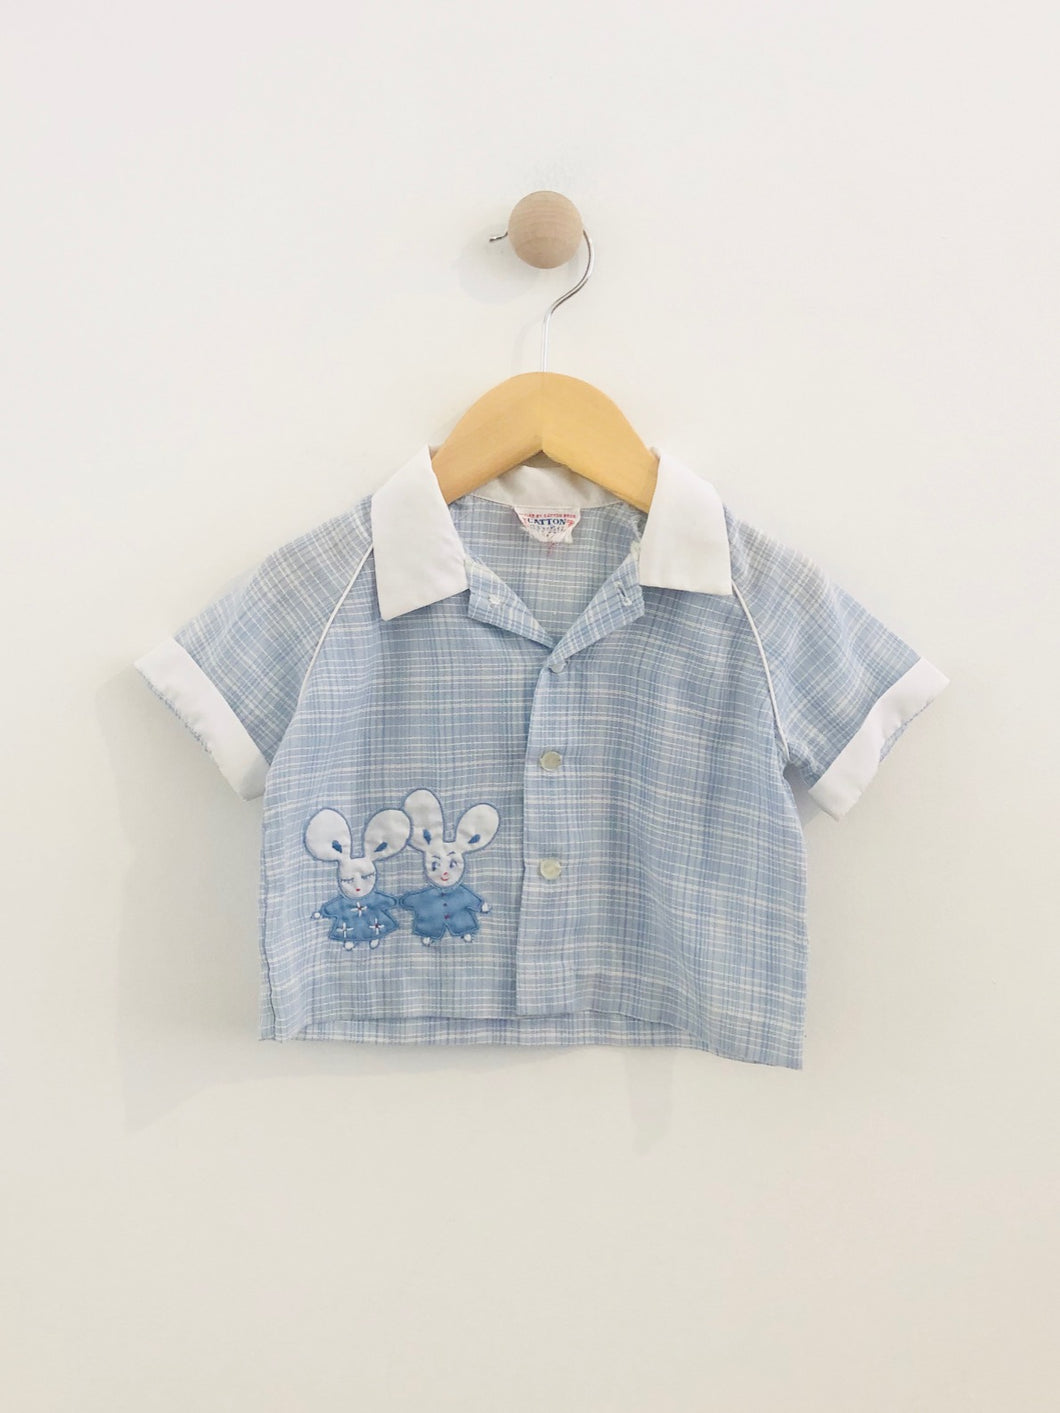 mouse patch shirt / fits 6m